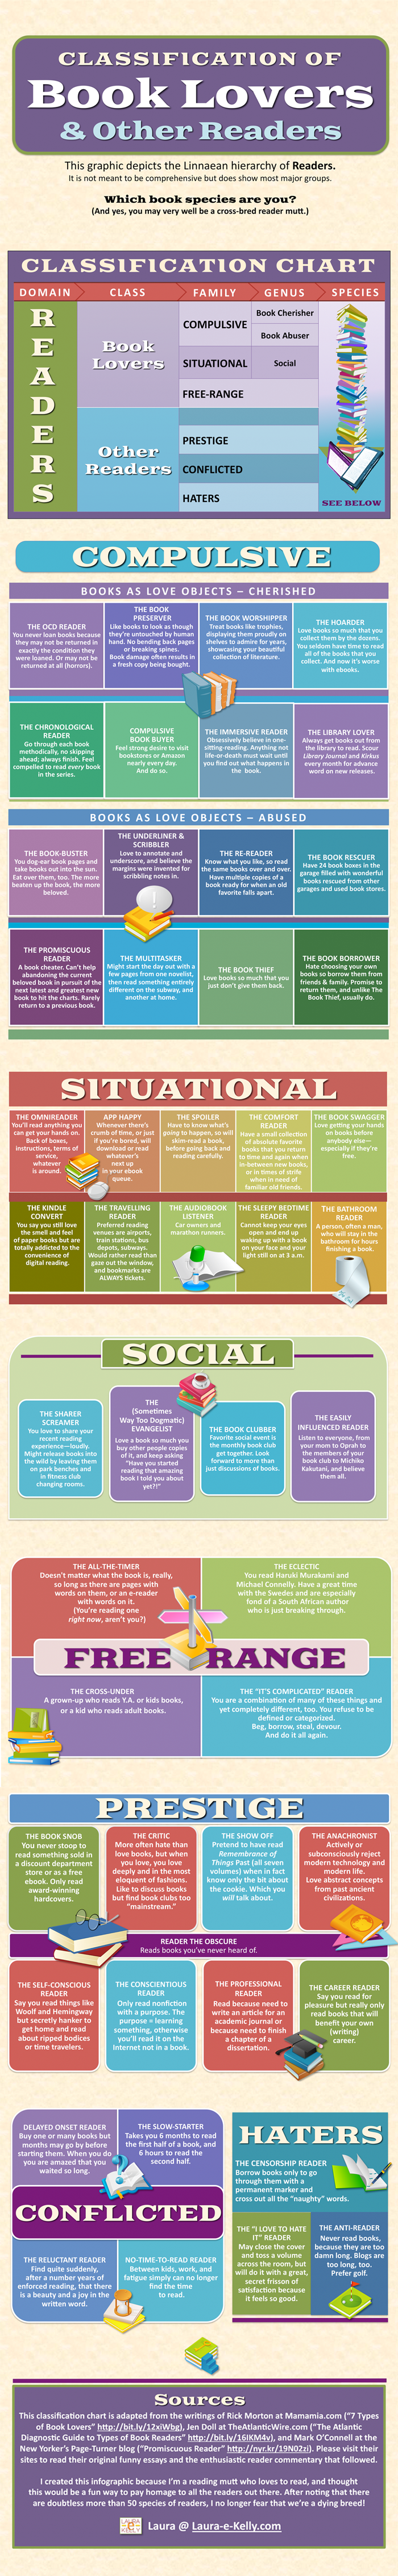 What Species of Reader Are You?--Infographic